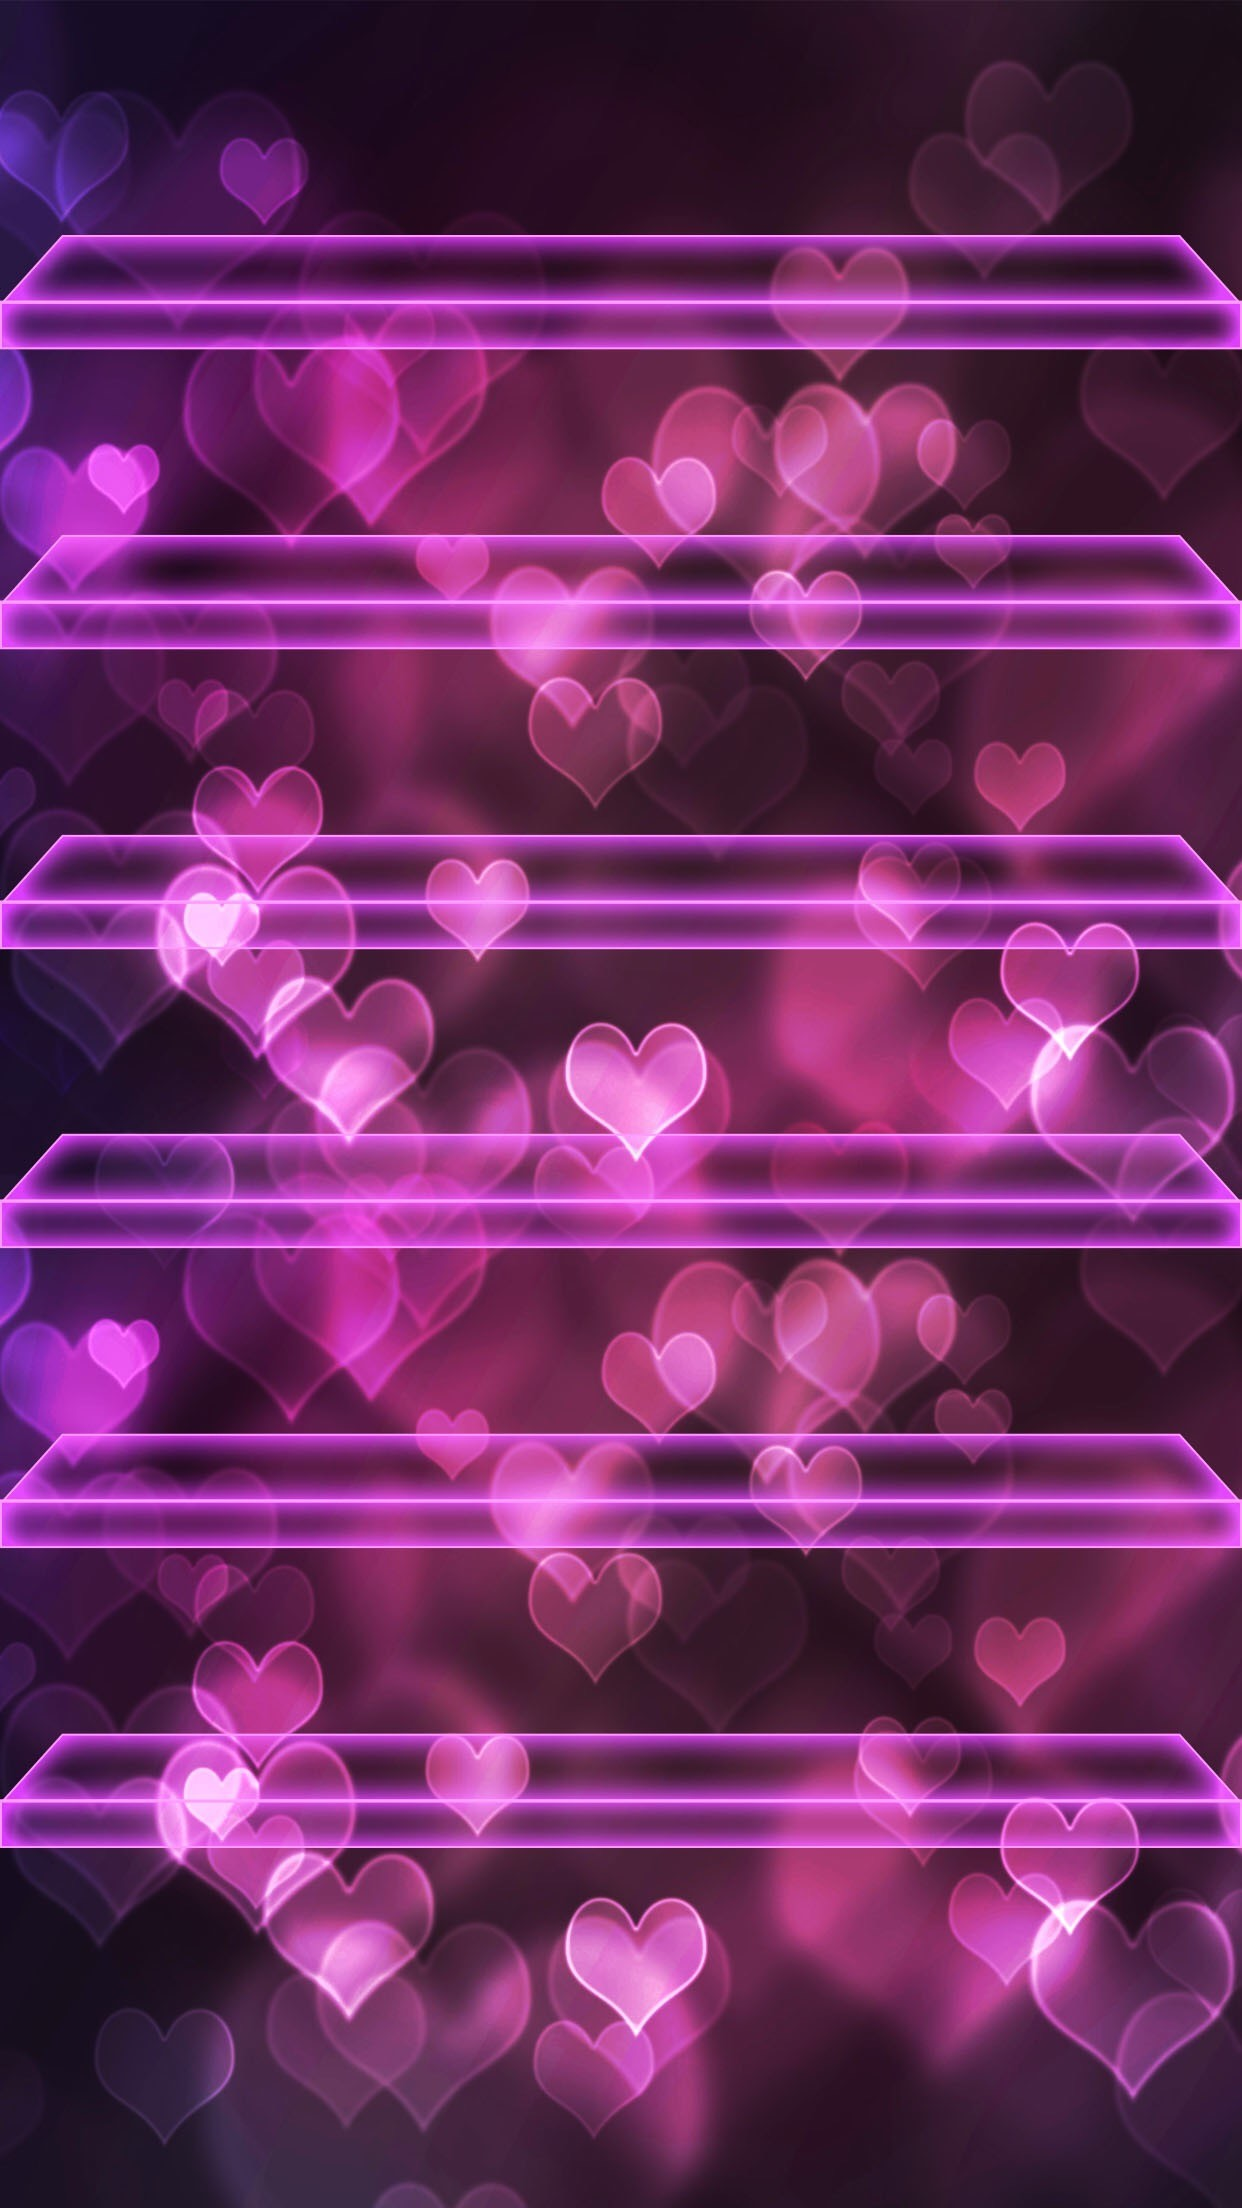 1242x2208 ↑↑TAP AND GET THE FREE APP! Shelves Hearts Bokeh Pink Neon Love Romantic